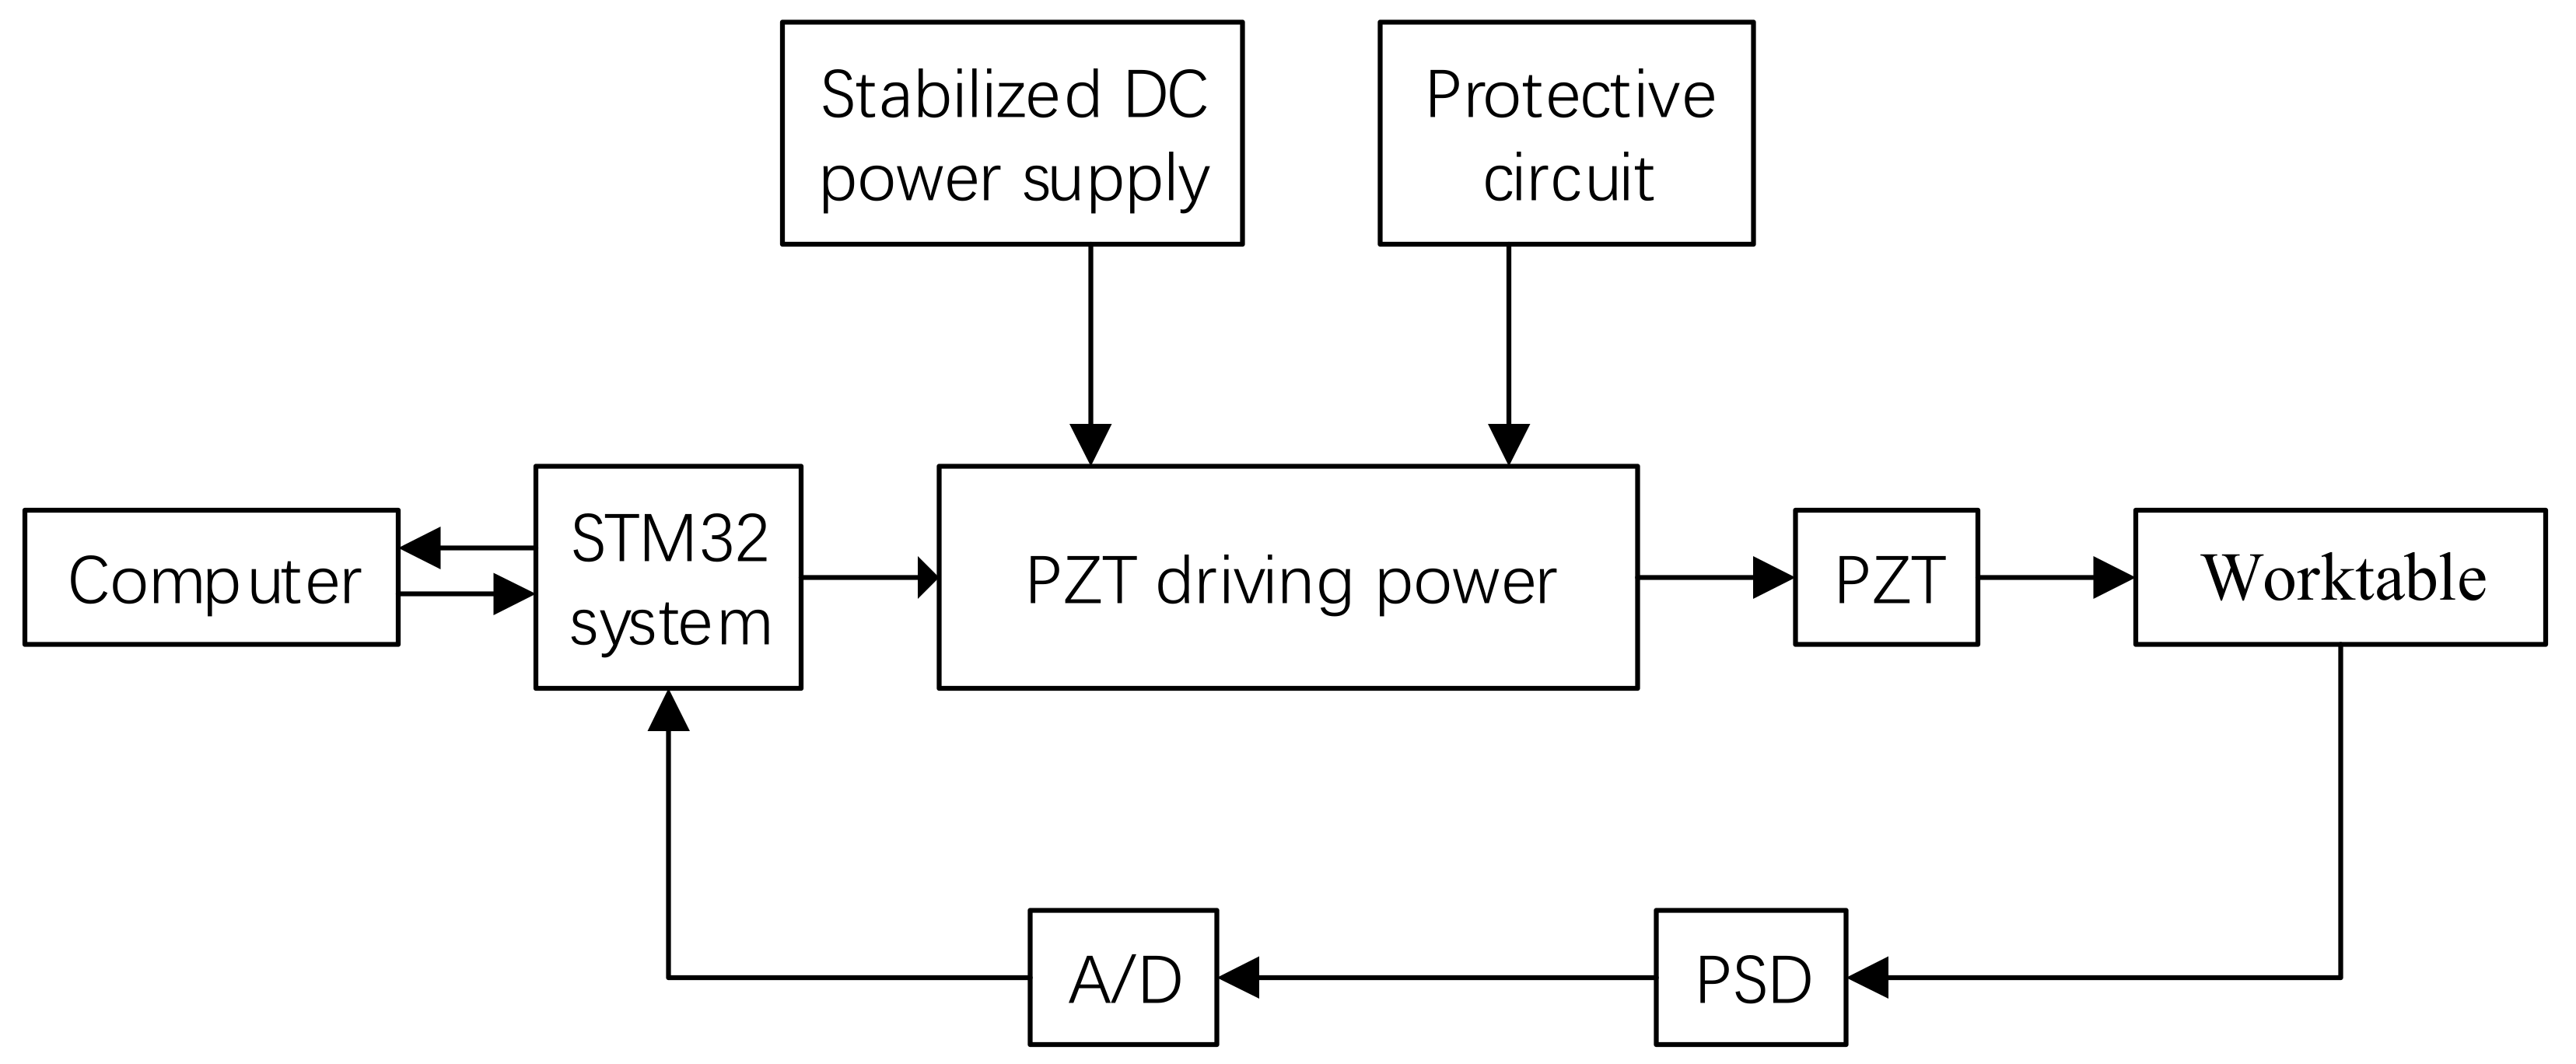 Schematic Diagram Of Articles Confederation. Articles Of ... on 1980 chevy truck ignition wiring diagram, chevy 1500 wiring diagram, 1994 toyota wiring diagram, 2007 chevy impala radio wiring diagram, 93 chevy truck wiring diagram, 95 chevy truck instrument cluster wiring diagram, 1994 chevy c 2500 wiring diagram, 1994 chevy astro van wiring diagram, 1994 chevy k2500 wiring diagram, 1994 pontiac firebird wiring diagram, 1994 c1500 wiring diagram, 2001 chevy express van wiring diagram, 1994 buick lesabre wiring diagram, 1994 oldsmobile bravada wiring diagram, 1994 chevy k1500 transmission diagram, 1994 nissan maxima wiring diagram, 1994 chevy s10 blazer wiring diagram, 1994 cadillac deville wiring diagram, 1994 ford wiring diagram, 1994 dodge viper wiring diagram,